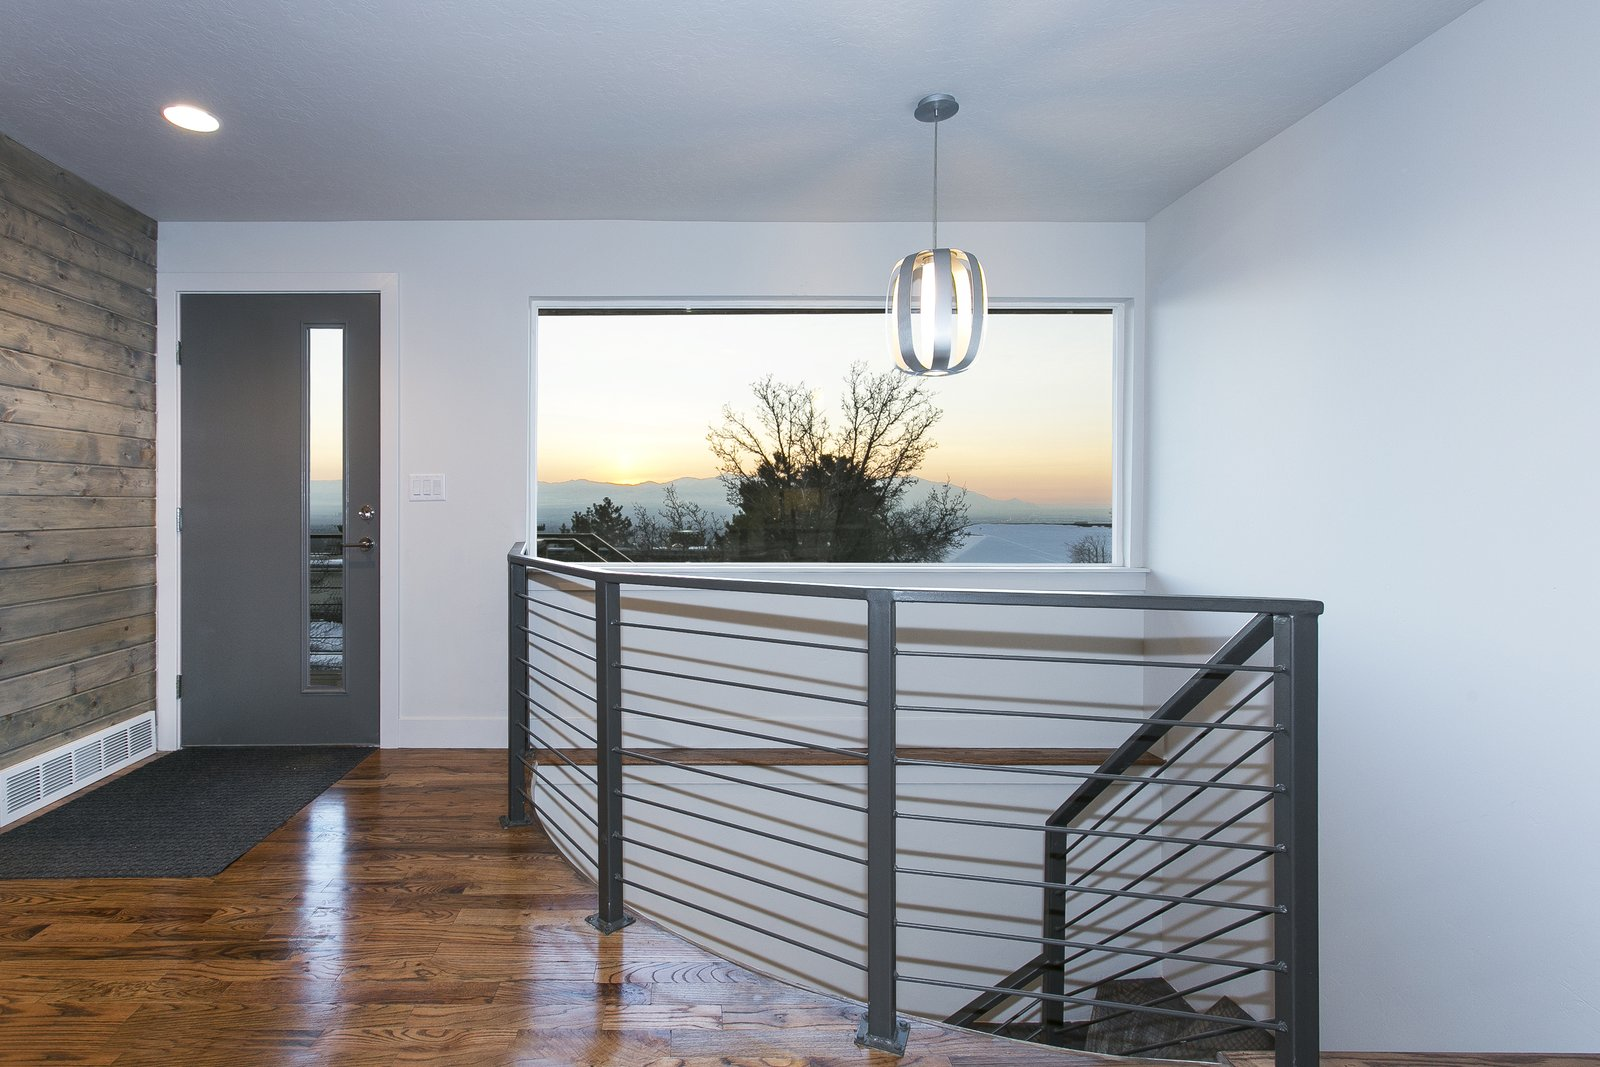 The front entry has a equal blend of oak, cedar and steel railing that creates a great space to soak in the Salt Lake Valley views of the Oquirrh mountain range.